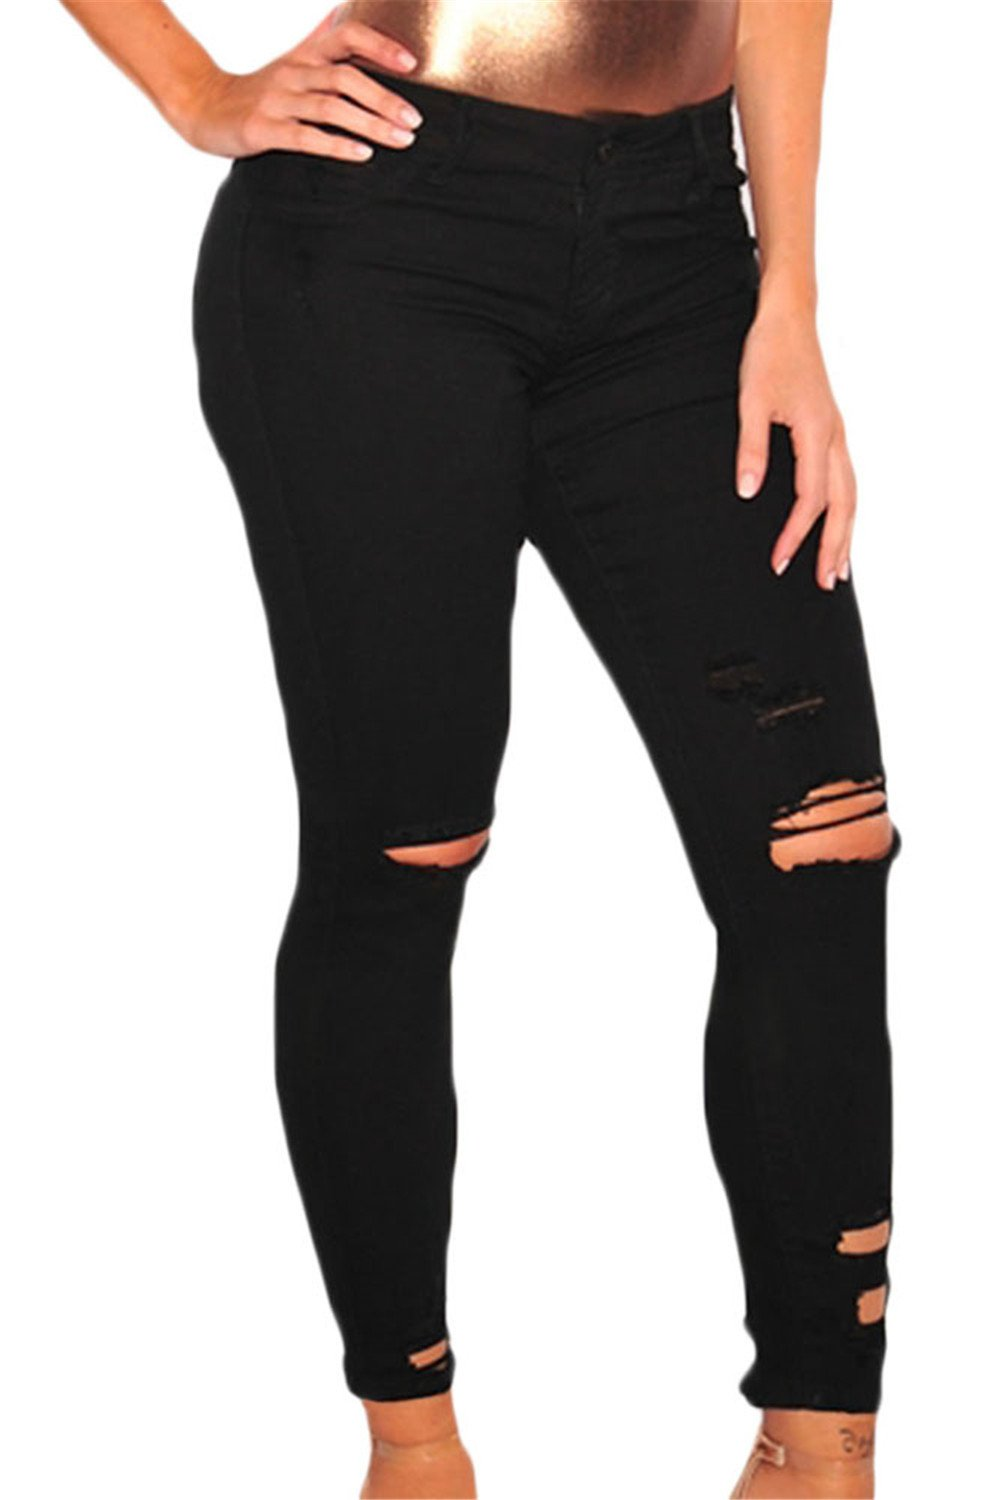 Just for Plus Women's Black Denim Destroyed Ankle Length Skinny Jeans Long Length Ripped Hole Trousers Pants,L